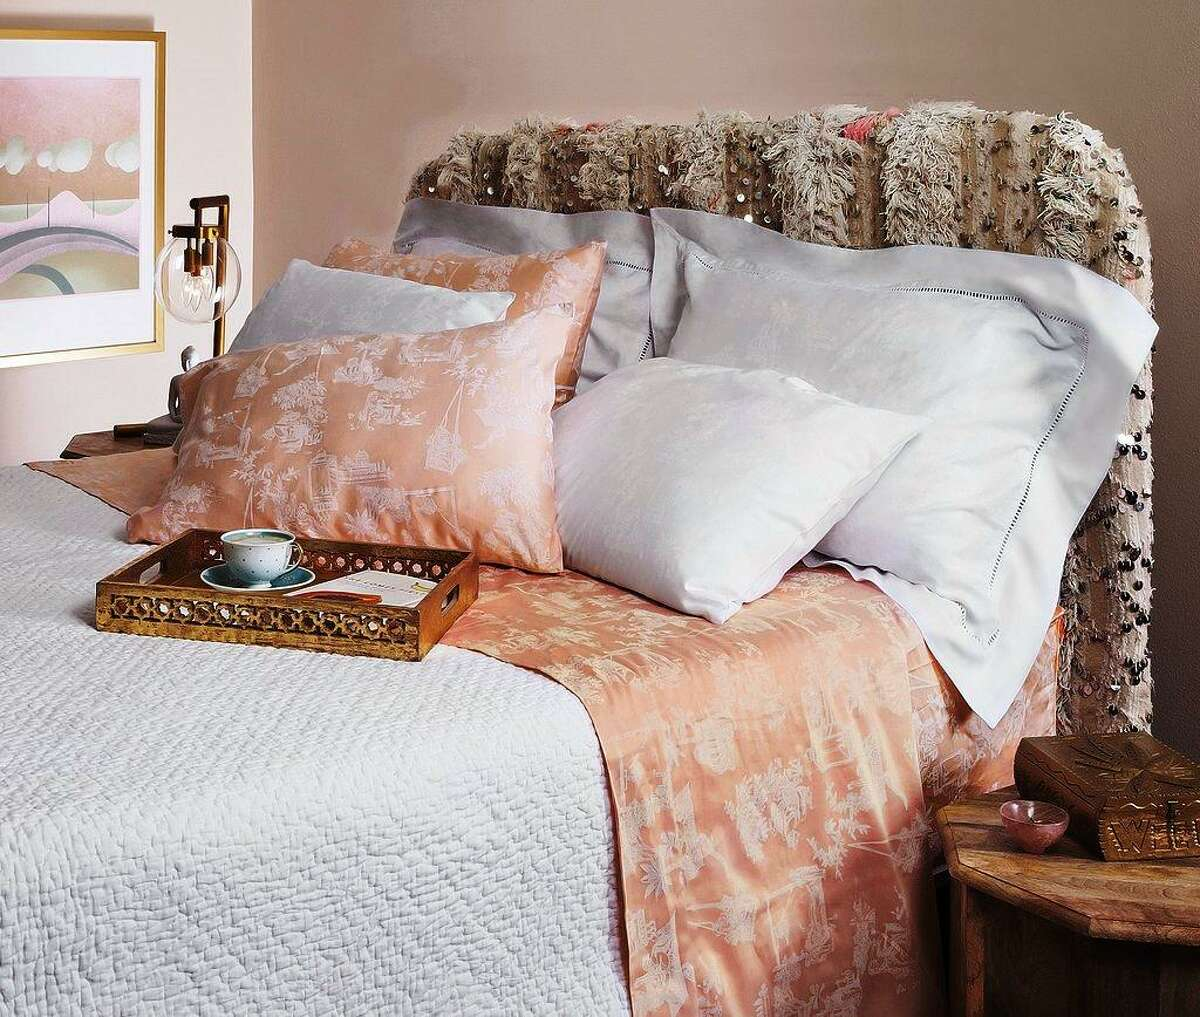 Dawson + Hellmann printed bedding comes in baby pink with a Kama Sutra pattern.